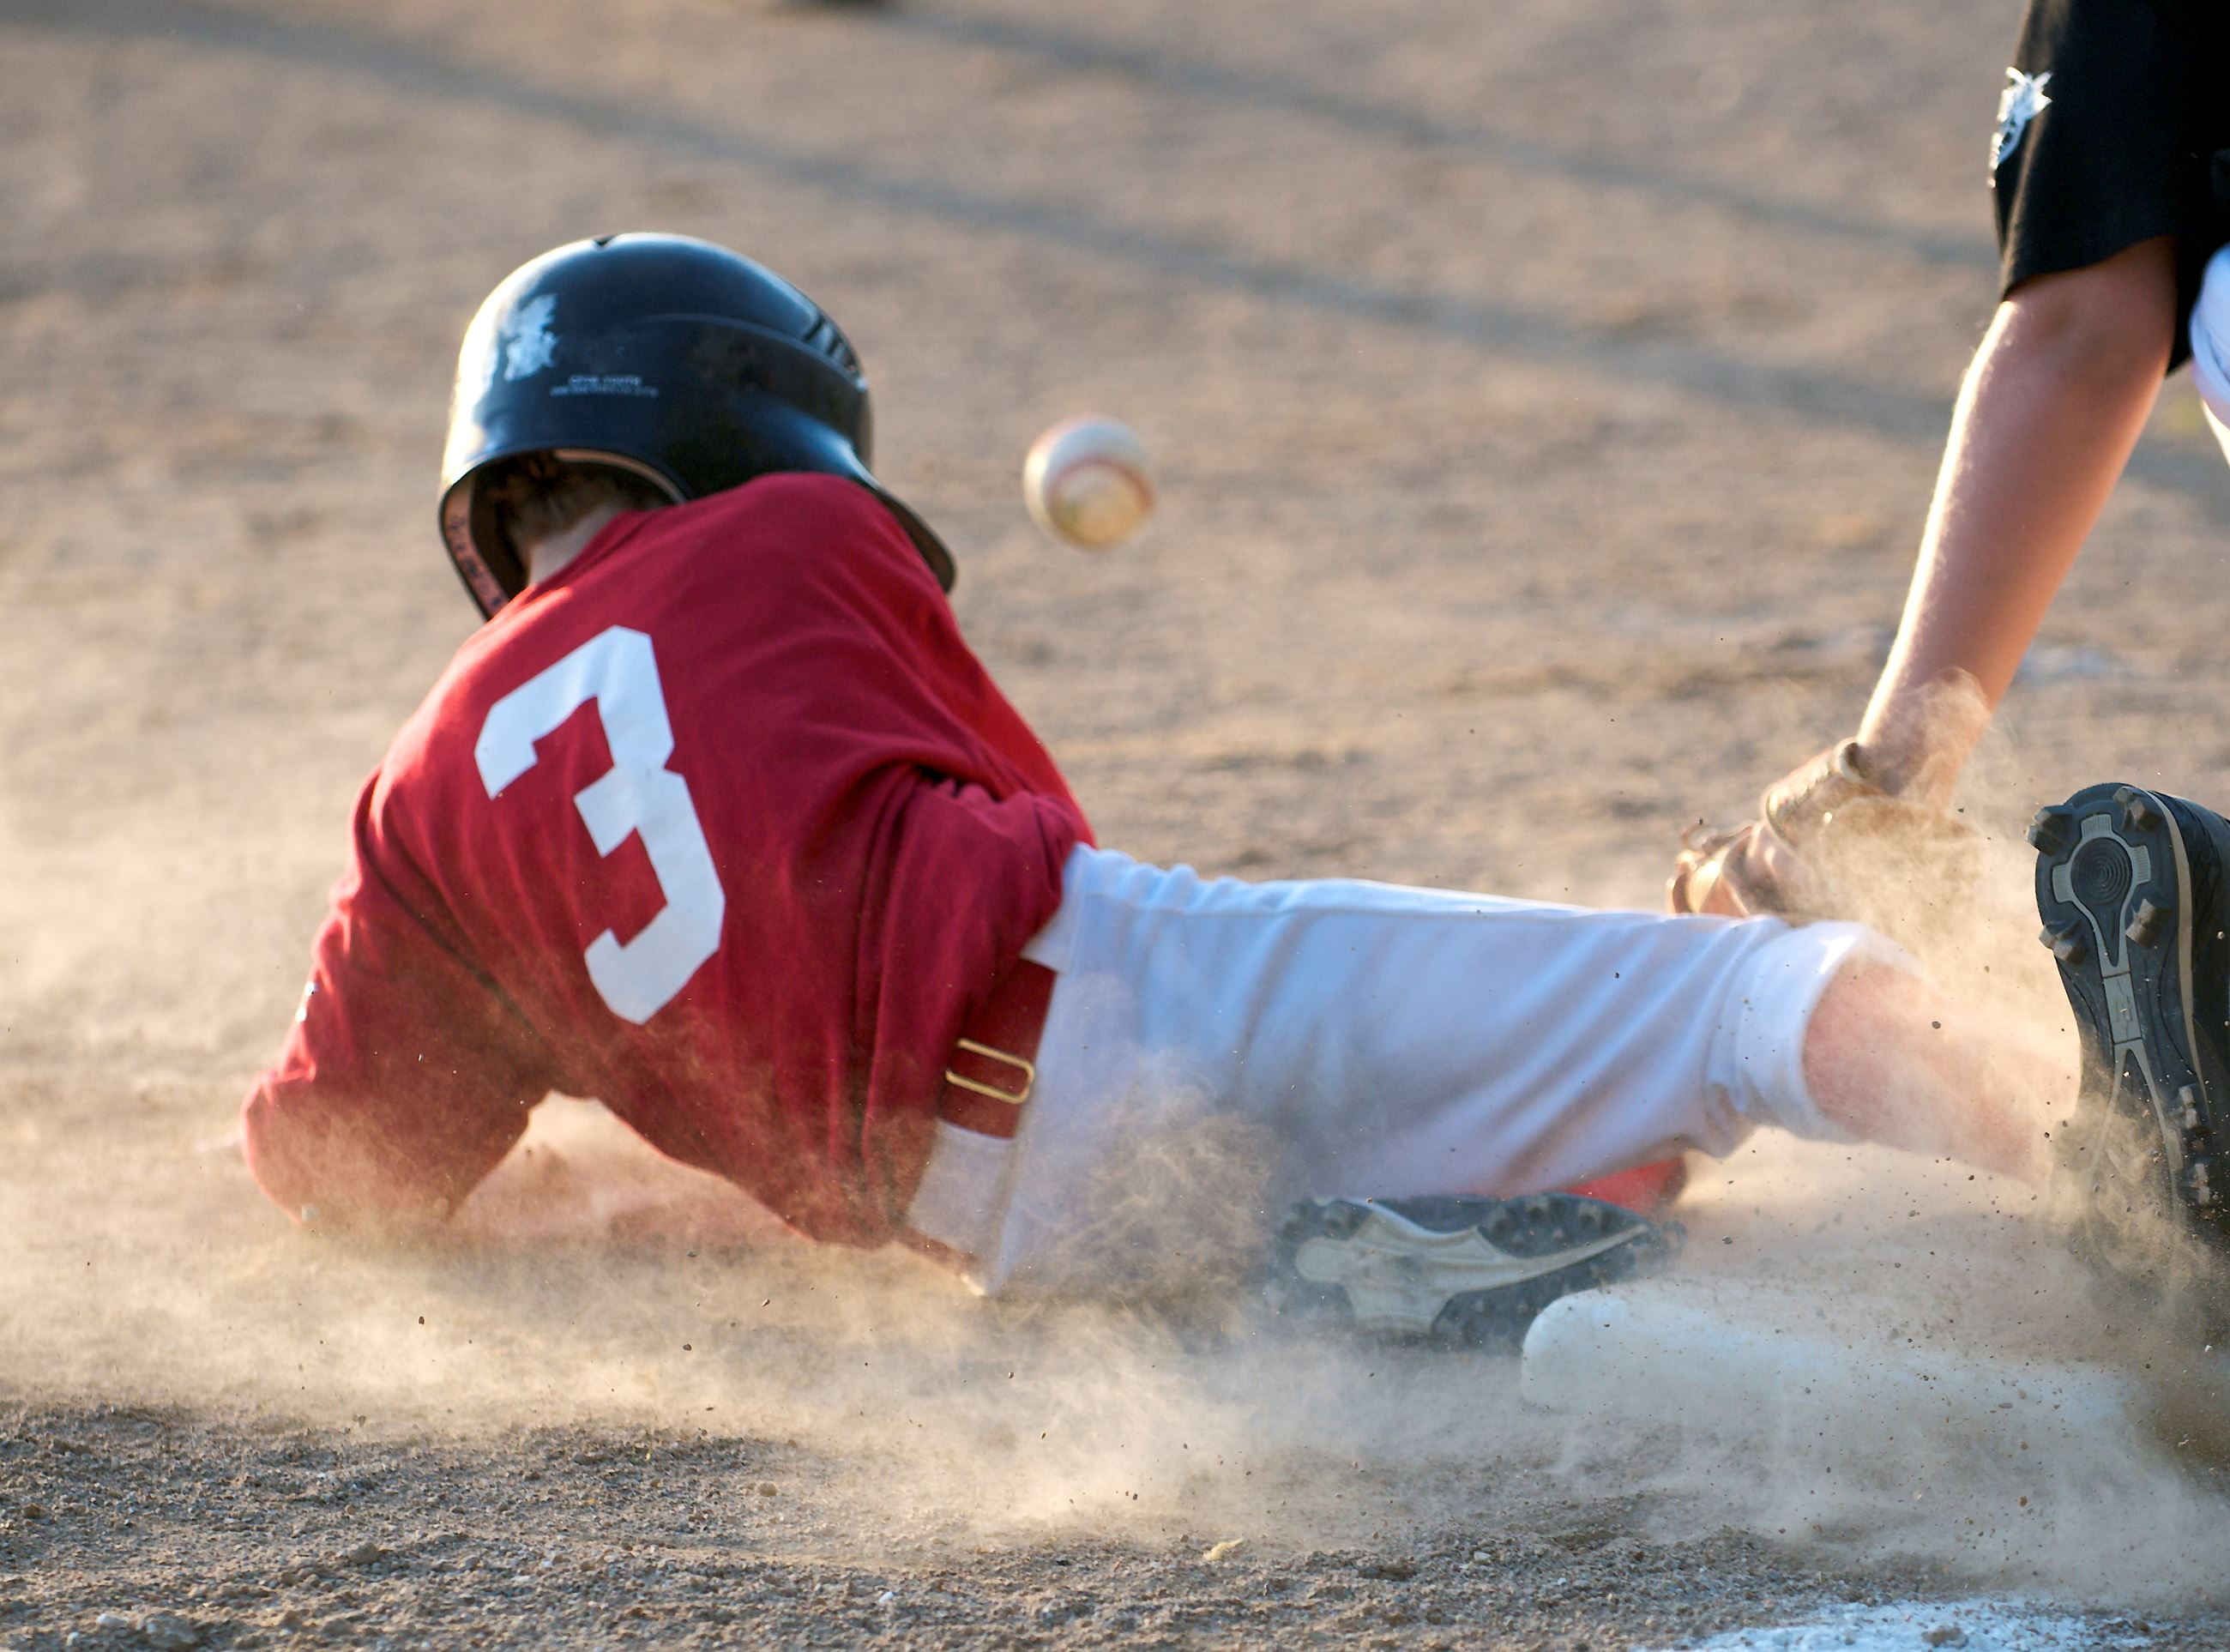 A baseball player sliding into a base